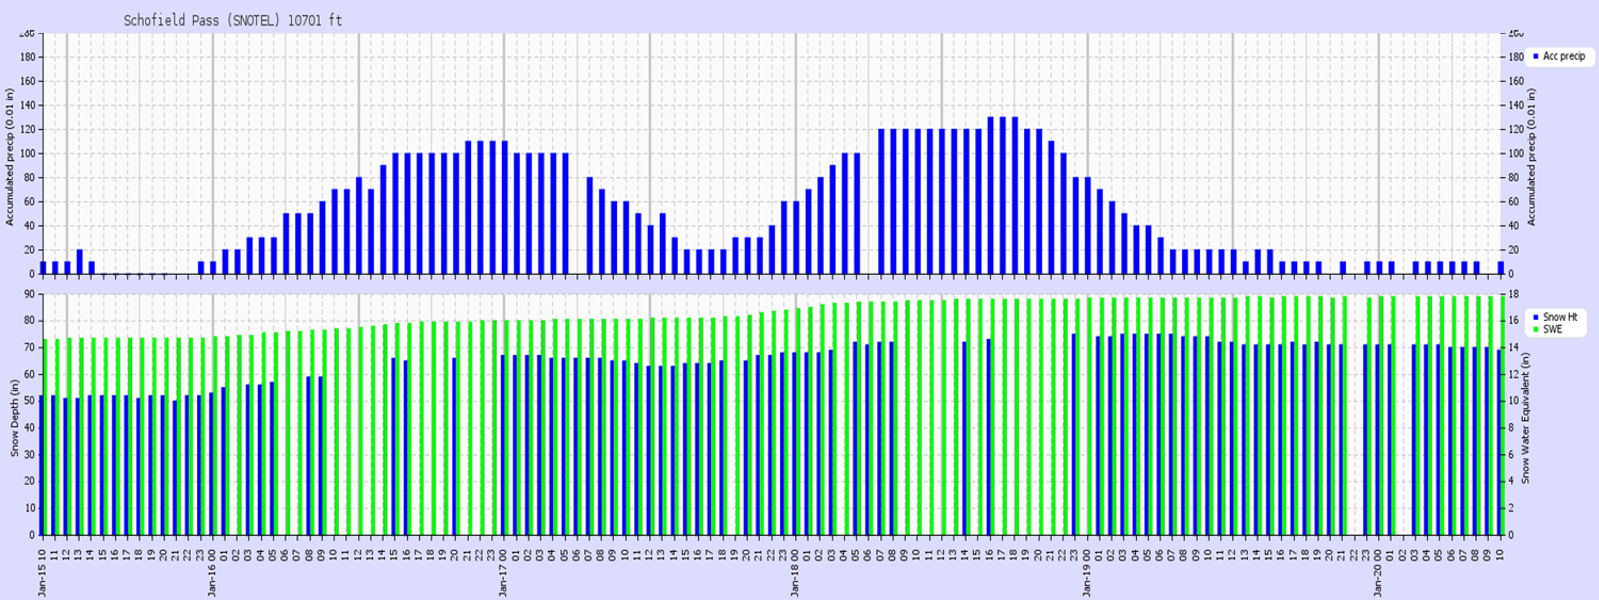 <b>Figure 14:</b> Recorded precipitation at the Schofield Pass SNOTEL site located 14 miles west of the accident site. The top panel shows hourly accumulated precipitation (0.01 in). The bottom panel shows snow depth in inches (blue bars), and snow water equivalent (green bars). The two storm events on January 16 and on the night of January 17 into January 18 are evident. (<a href=javascript:void(0); onClick=win=window.open('https://caic-production.imgix.net/aunui7hmysymu5b0yfuqgj2e7yf3?ixlib=php-3.1.0&s=1b00c7a7f733853b19b9f57c0b8c6b85','caic_media','resizable=1,height=820,width=840,scrollbars=yes');win.focus();return false;>see full sized image</a>)